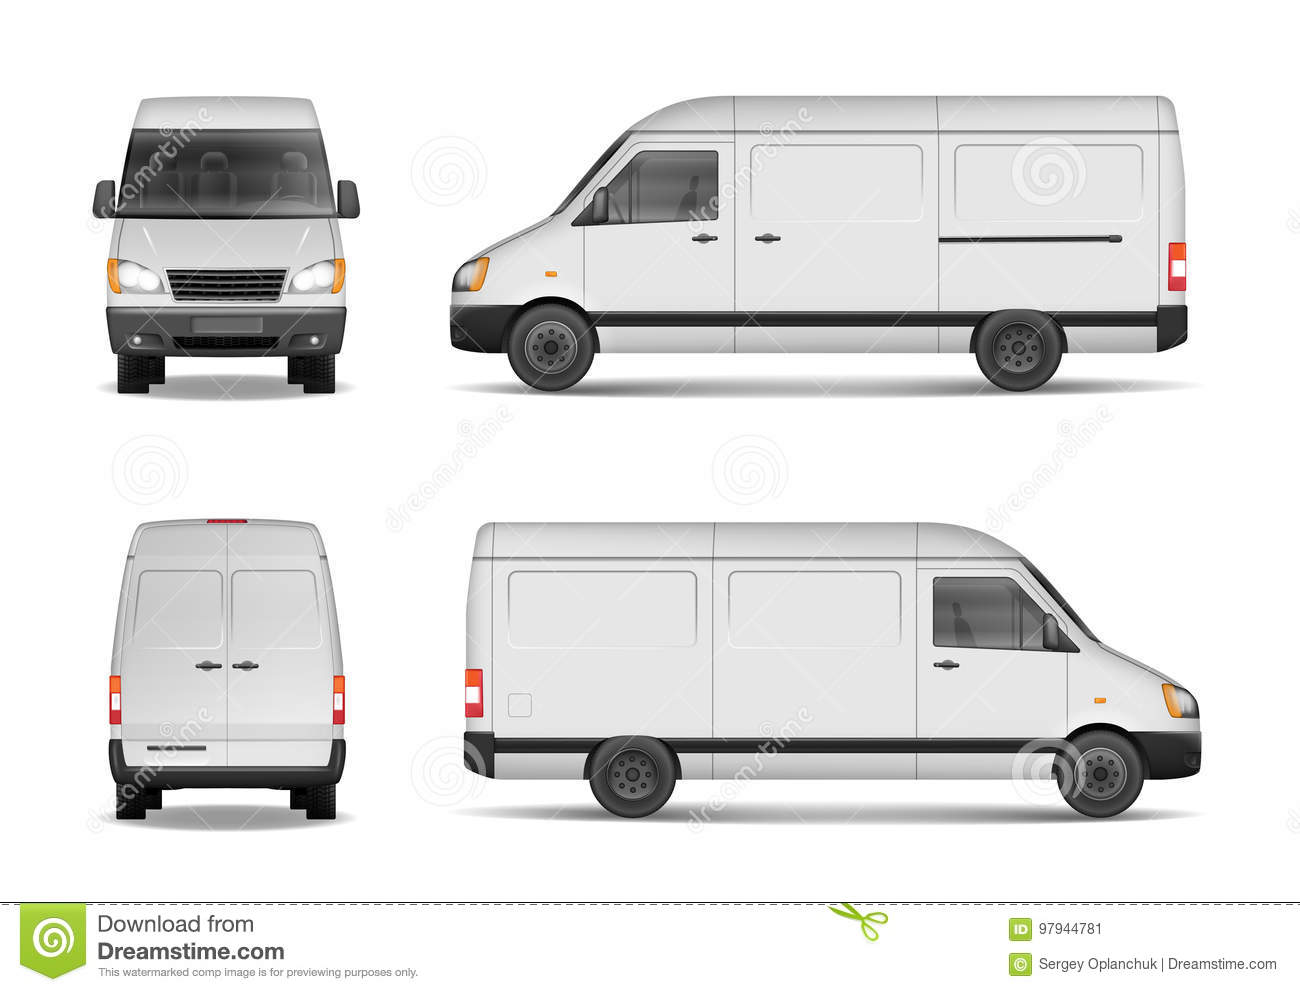 da96fb6d9221 Isolated commercial delivery vehicle set. White van vector template for car  branding and advertising. Mini bus from side